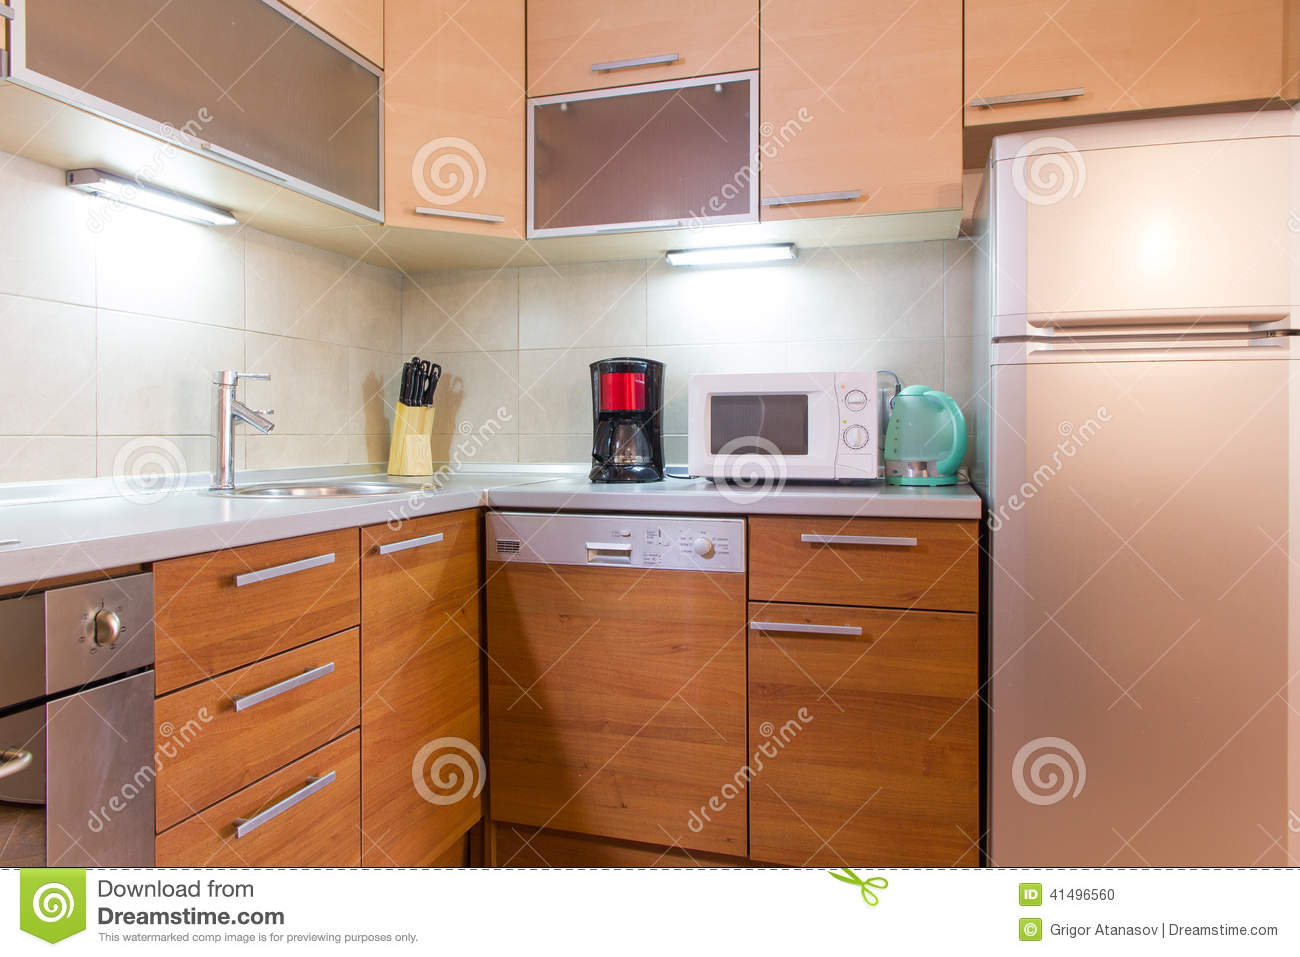 Petite Cuisine Moderne Photo Stock Small Modern Kitchen Image 41496560